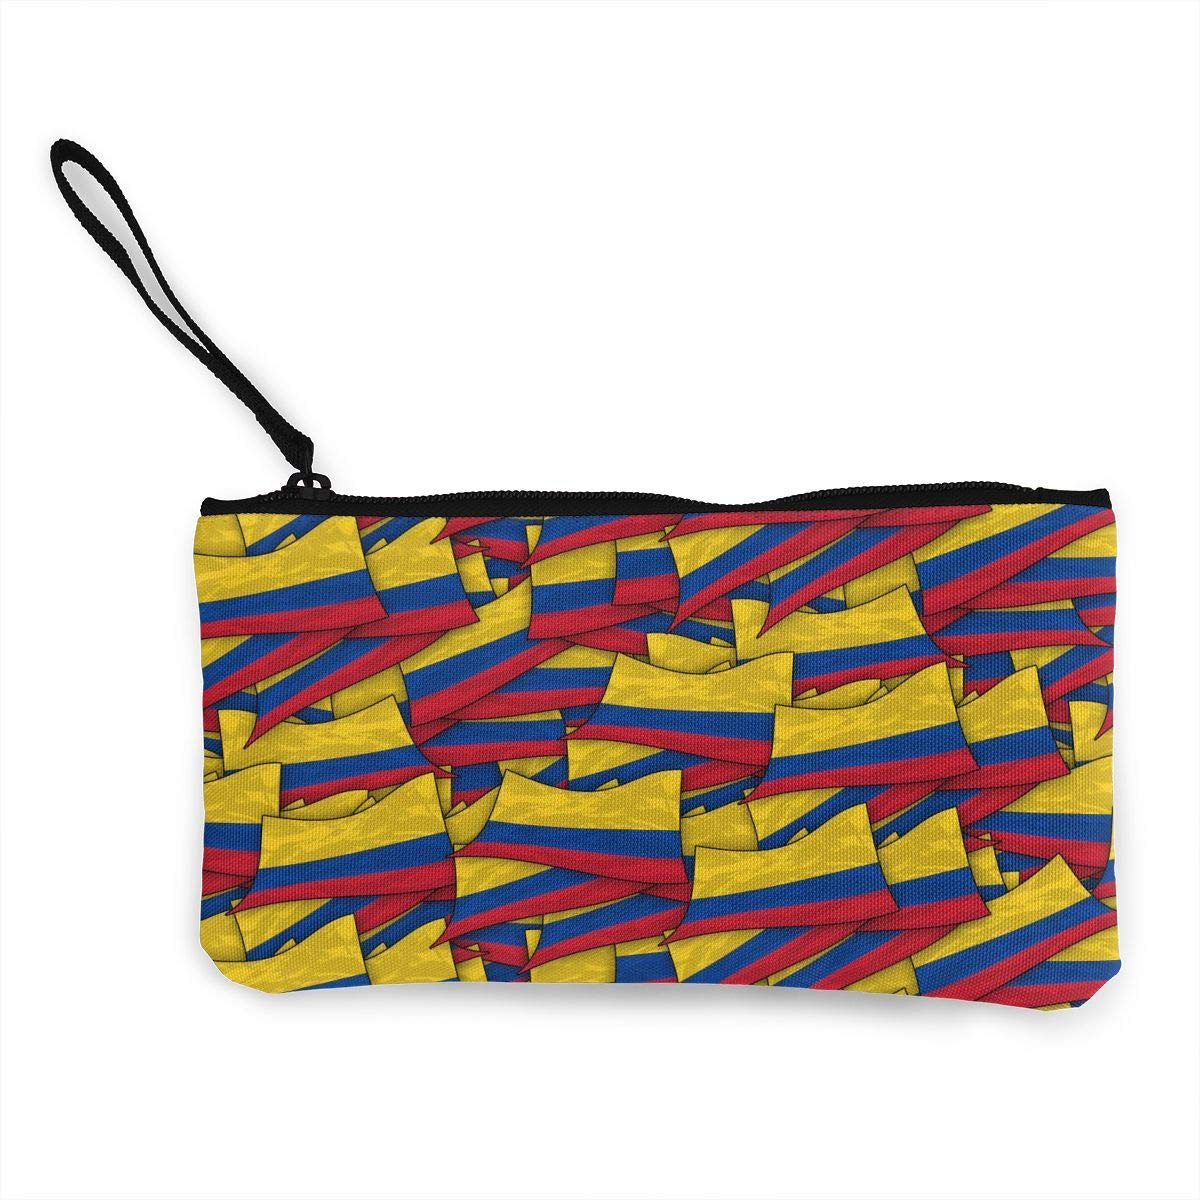 shuangshao liu Unisex Canvas Wristlet Wallet Clutch Purse ...